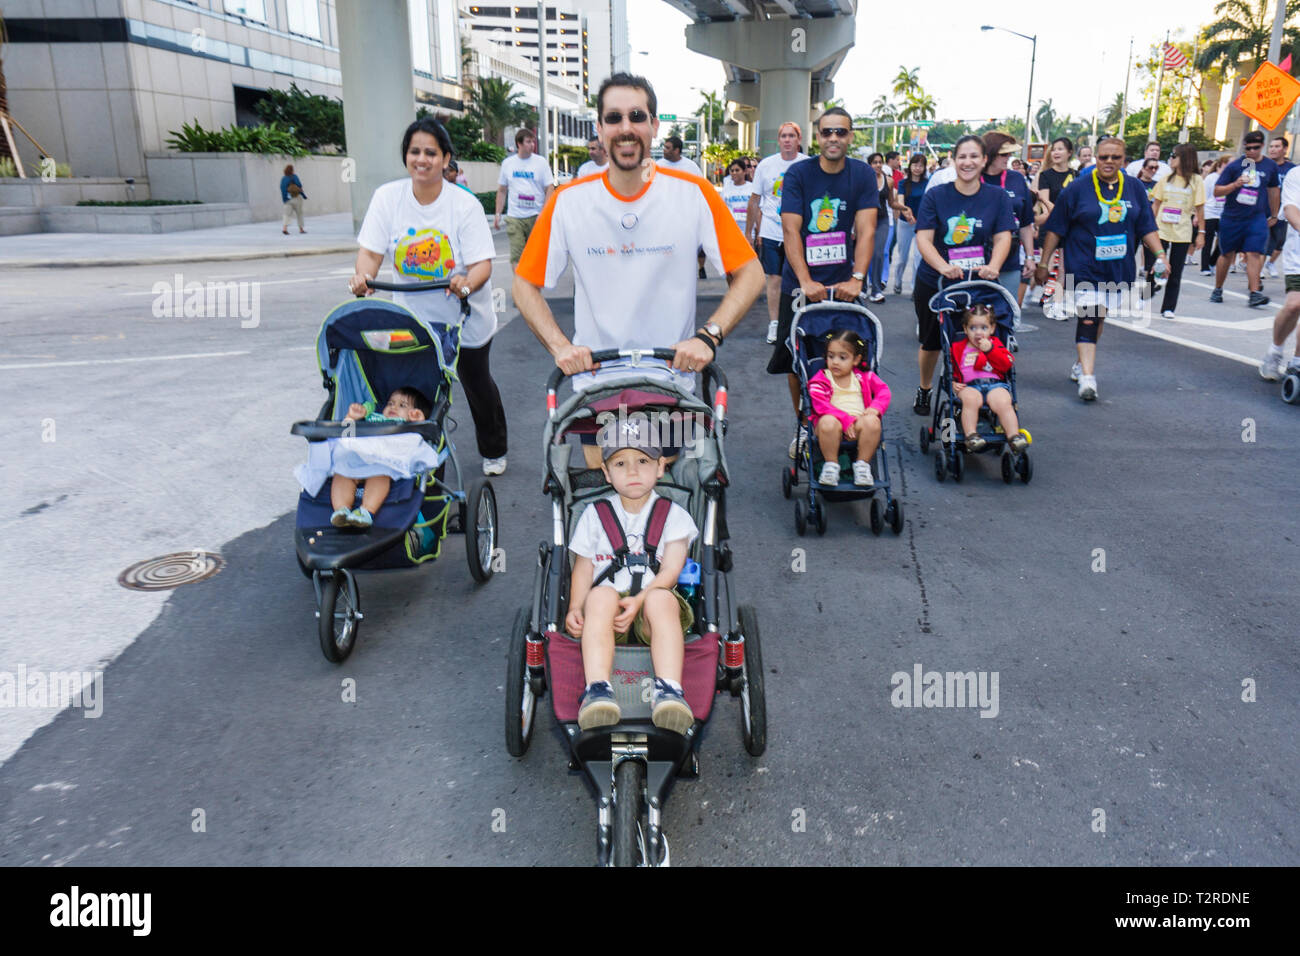 Miami Florida Bayfront Park Mercedes-Benz Miami Corporate Run community charity event runners coworkers co-workers walkers Hispa - Stock Image